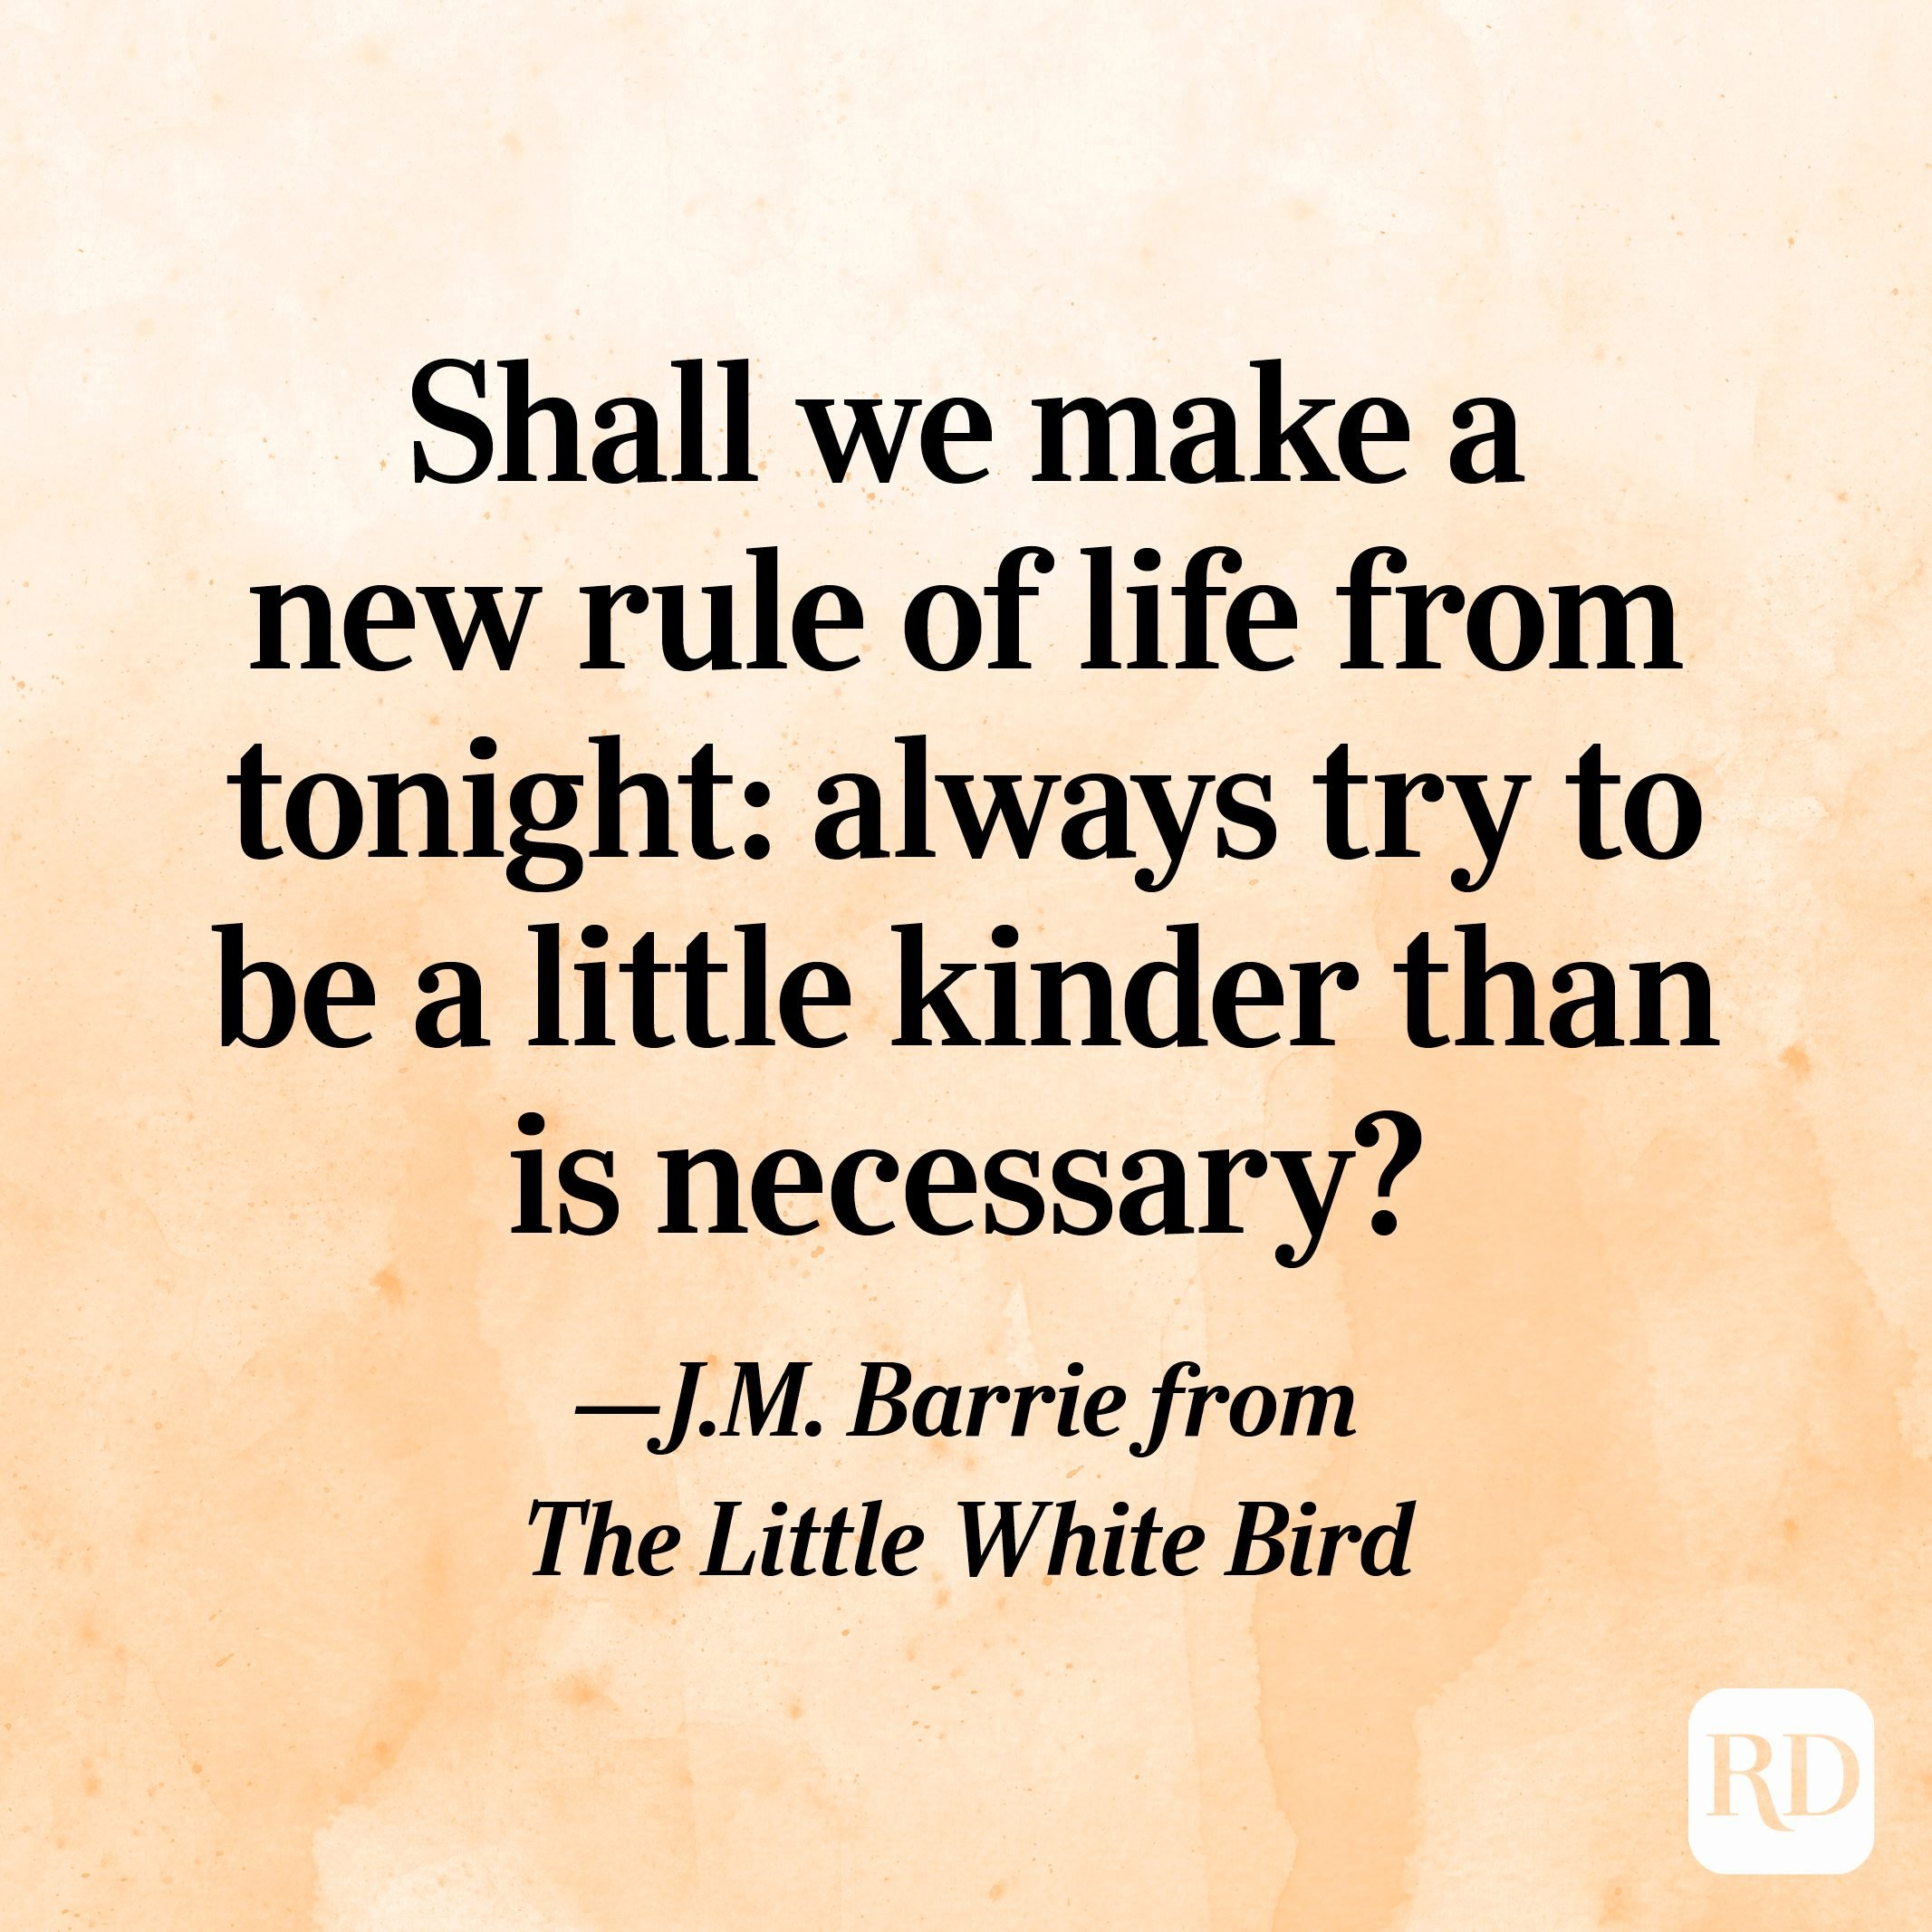 """""""Shall we make a new rule of life from tonight: always try to be a little kinder than is necessary?"""" —J.M. Barrie from The Little White Bird"""